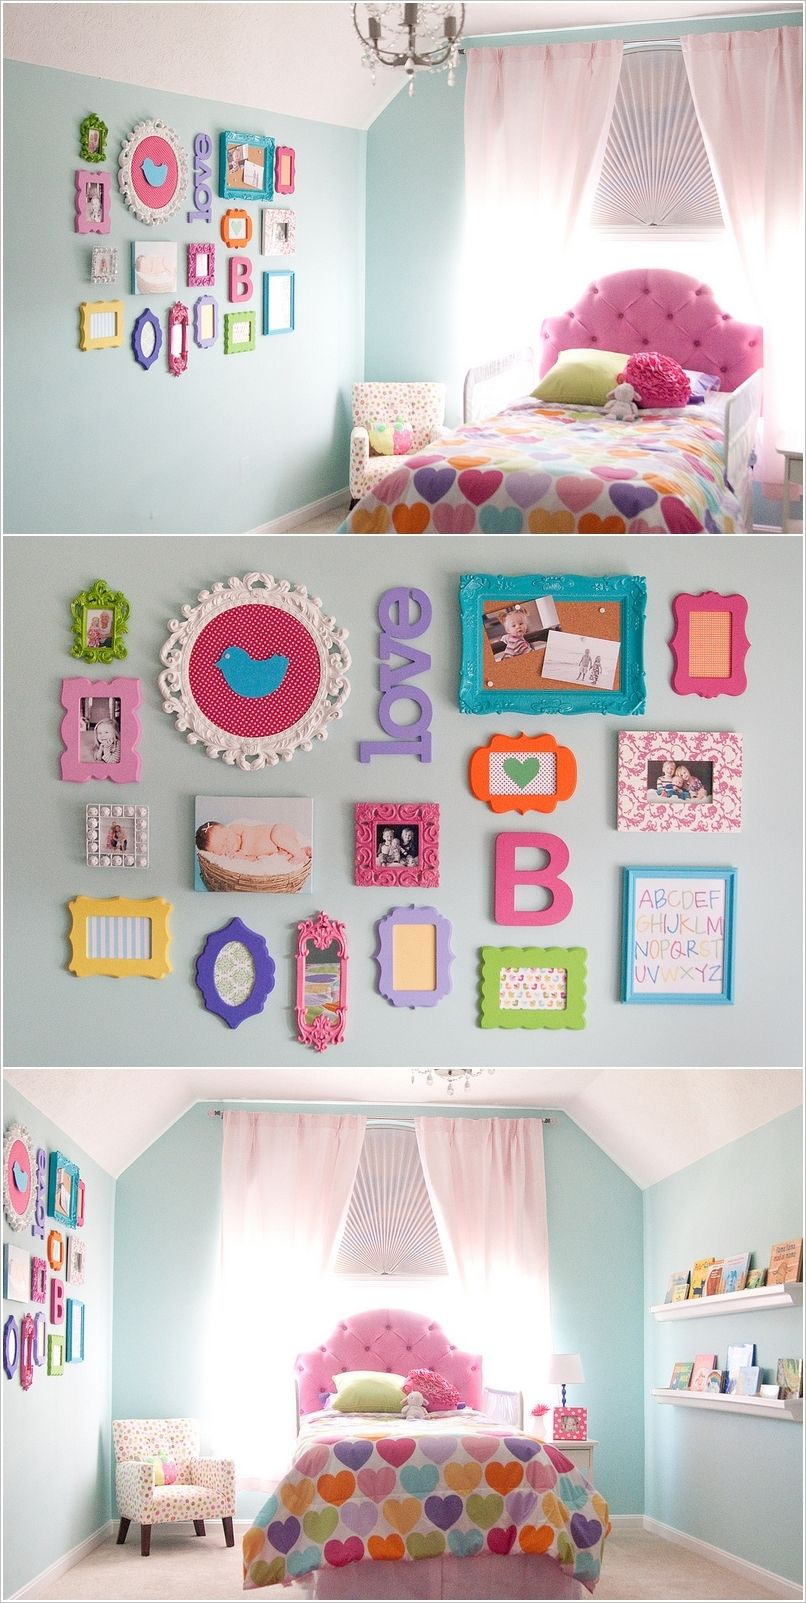 10 Cute Ideas To Decorate A Toddler Girl S Room Girls Room Paint Toddler Girl Room Girl Bedroom Decor